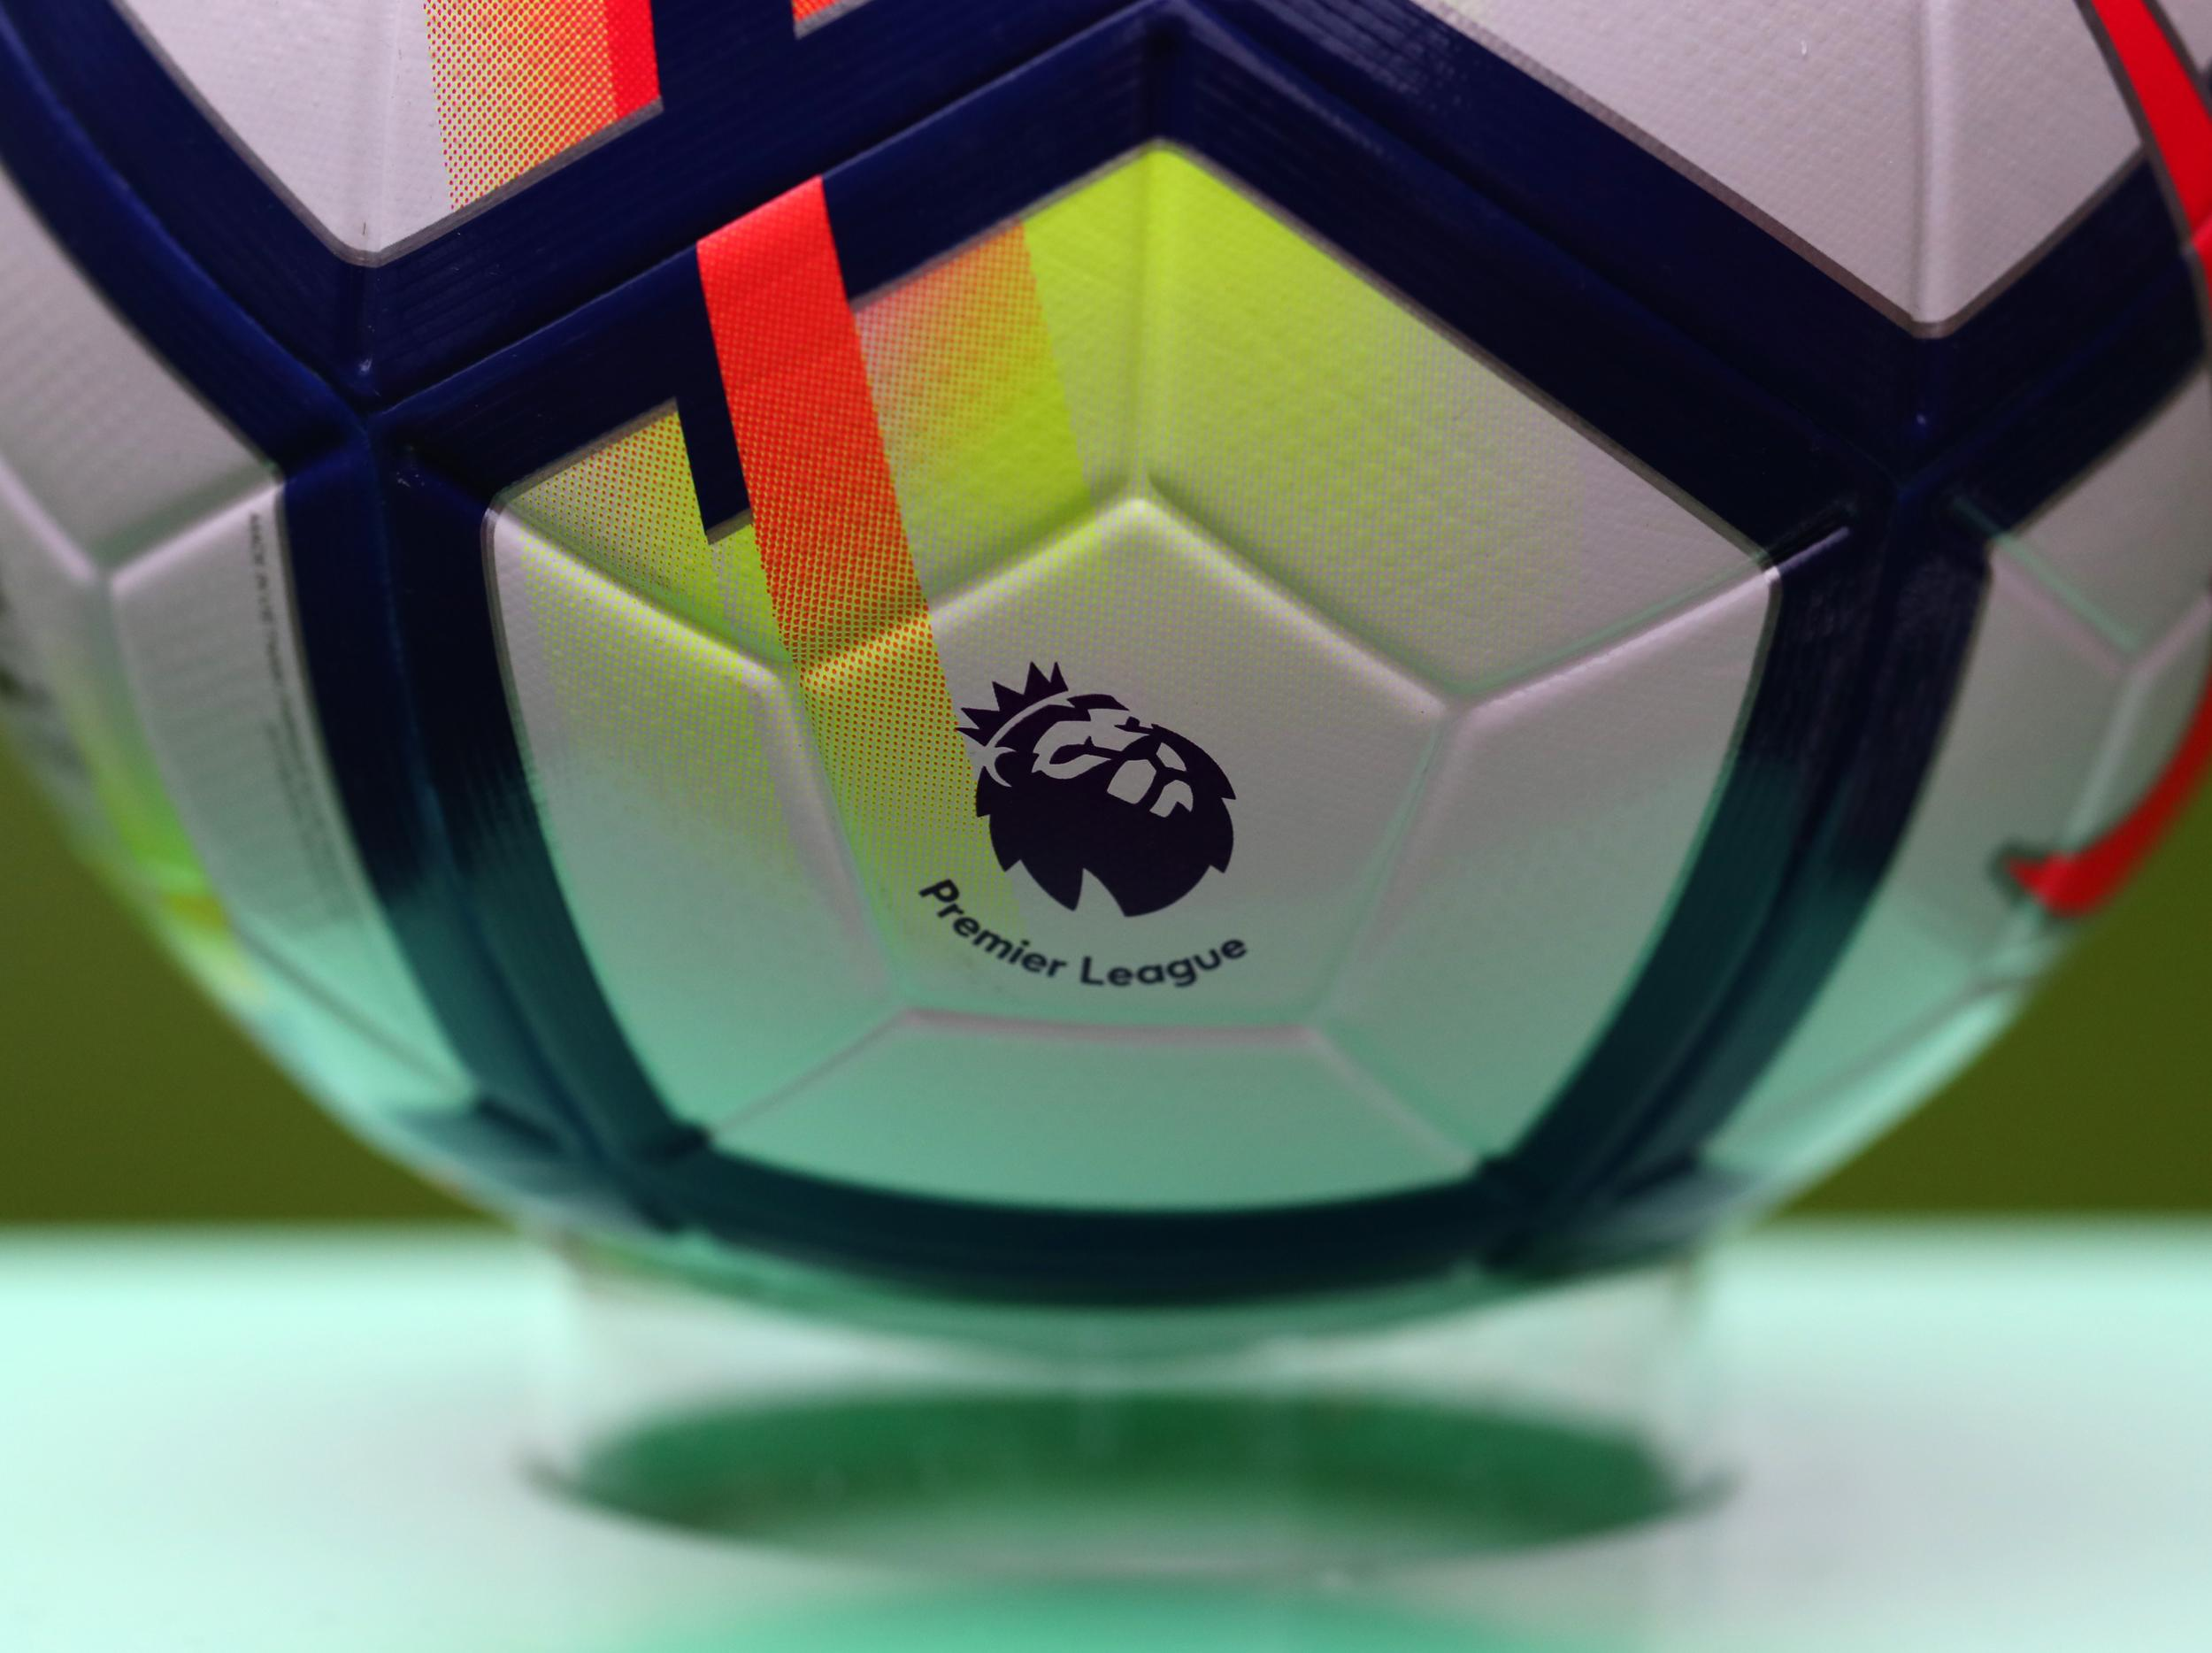 Premier League fixtures 2019/20 released in full as English